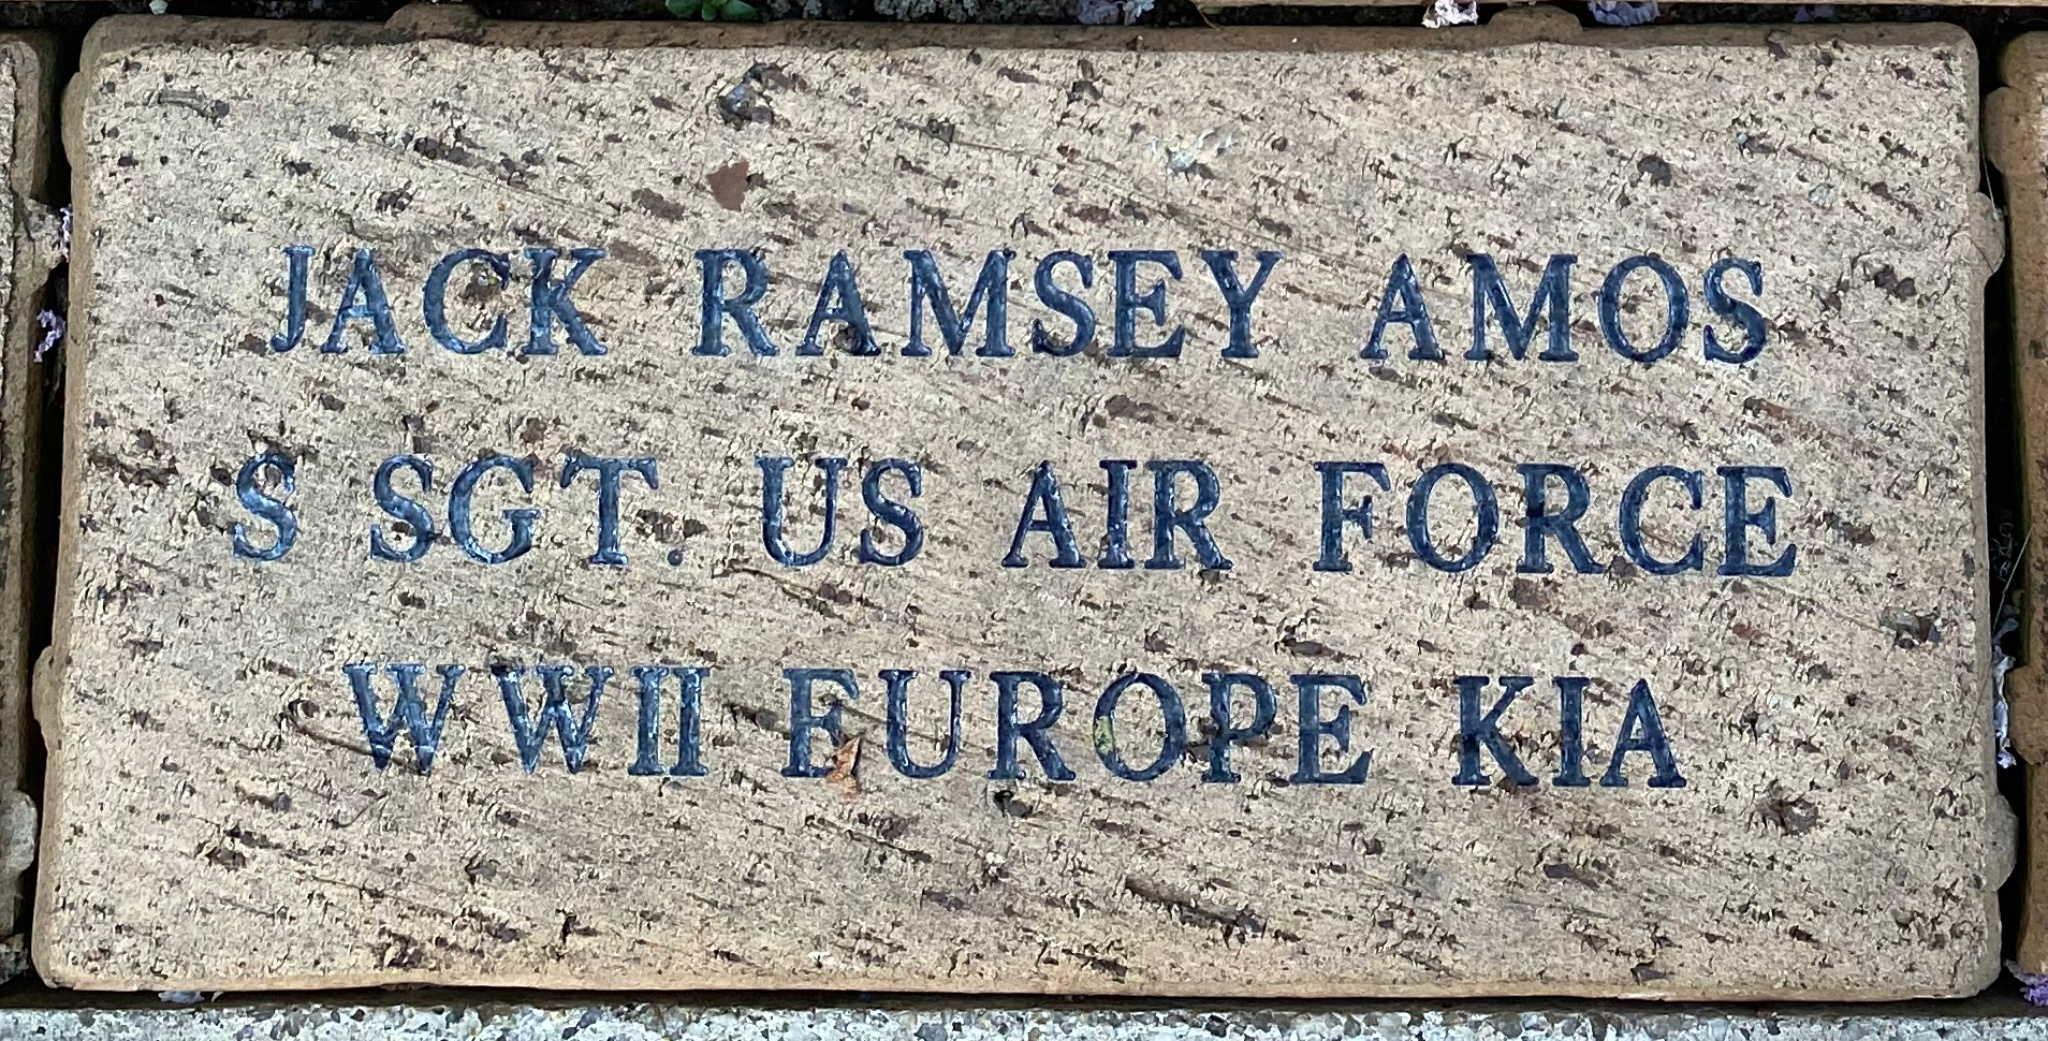 JACK RAMSEY AMOS S SGT US AIR FORCE WWII EUROPE KIA